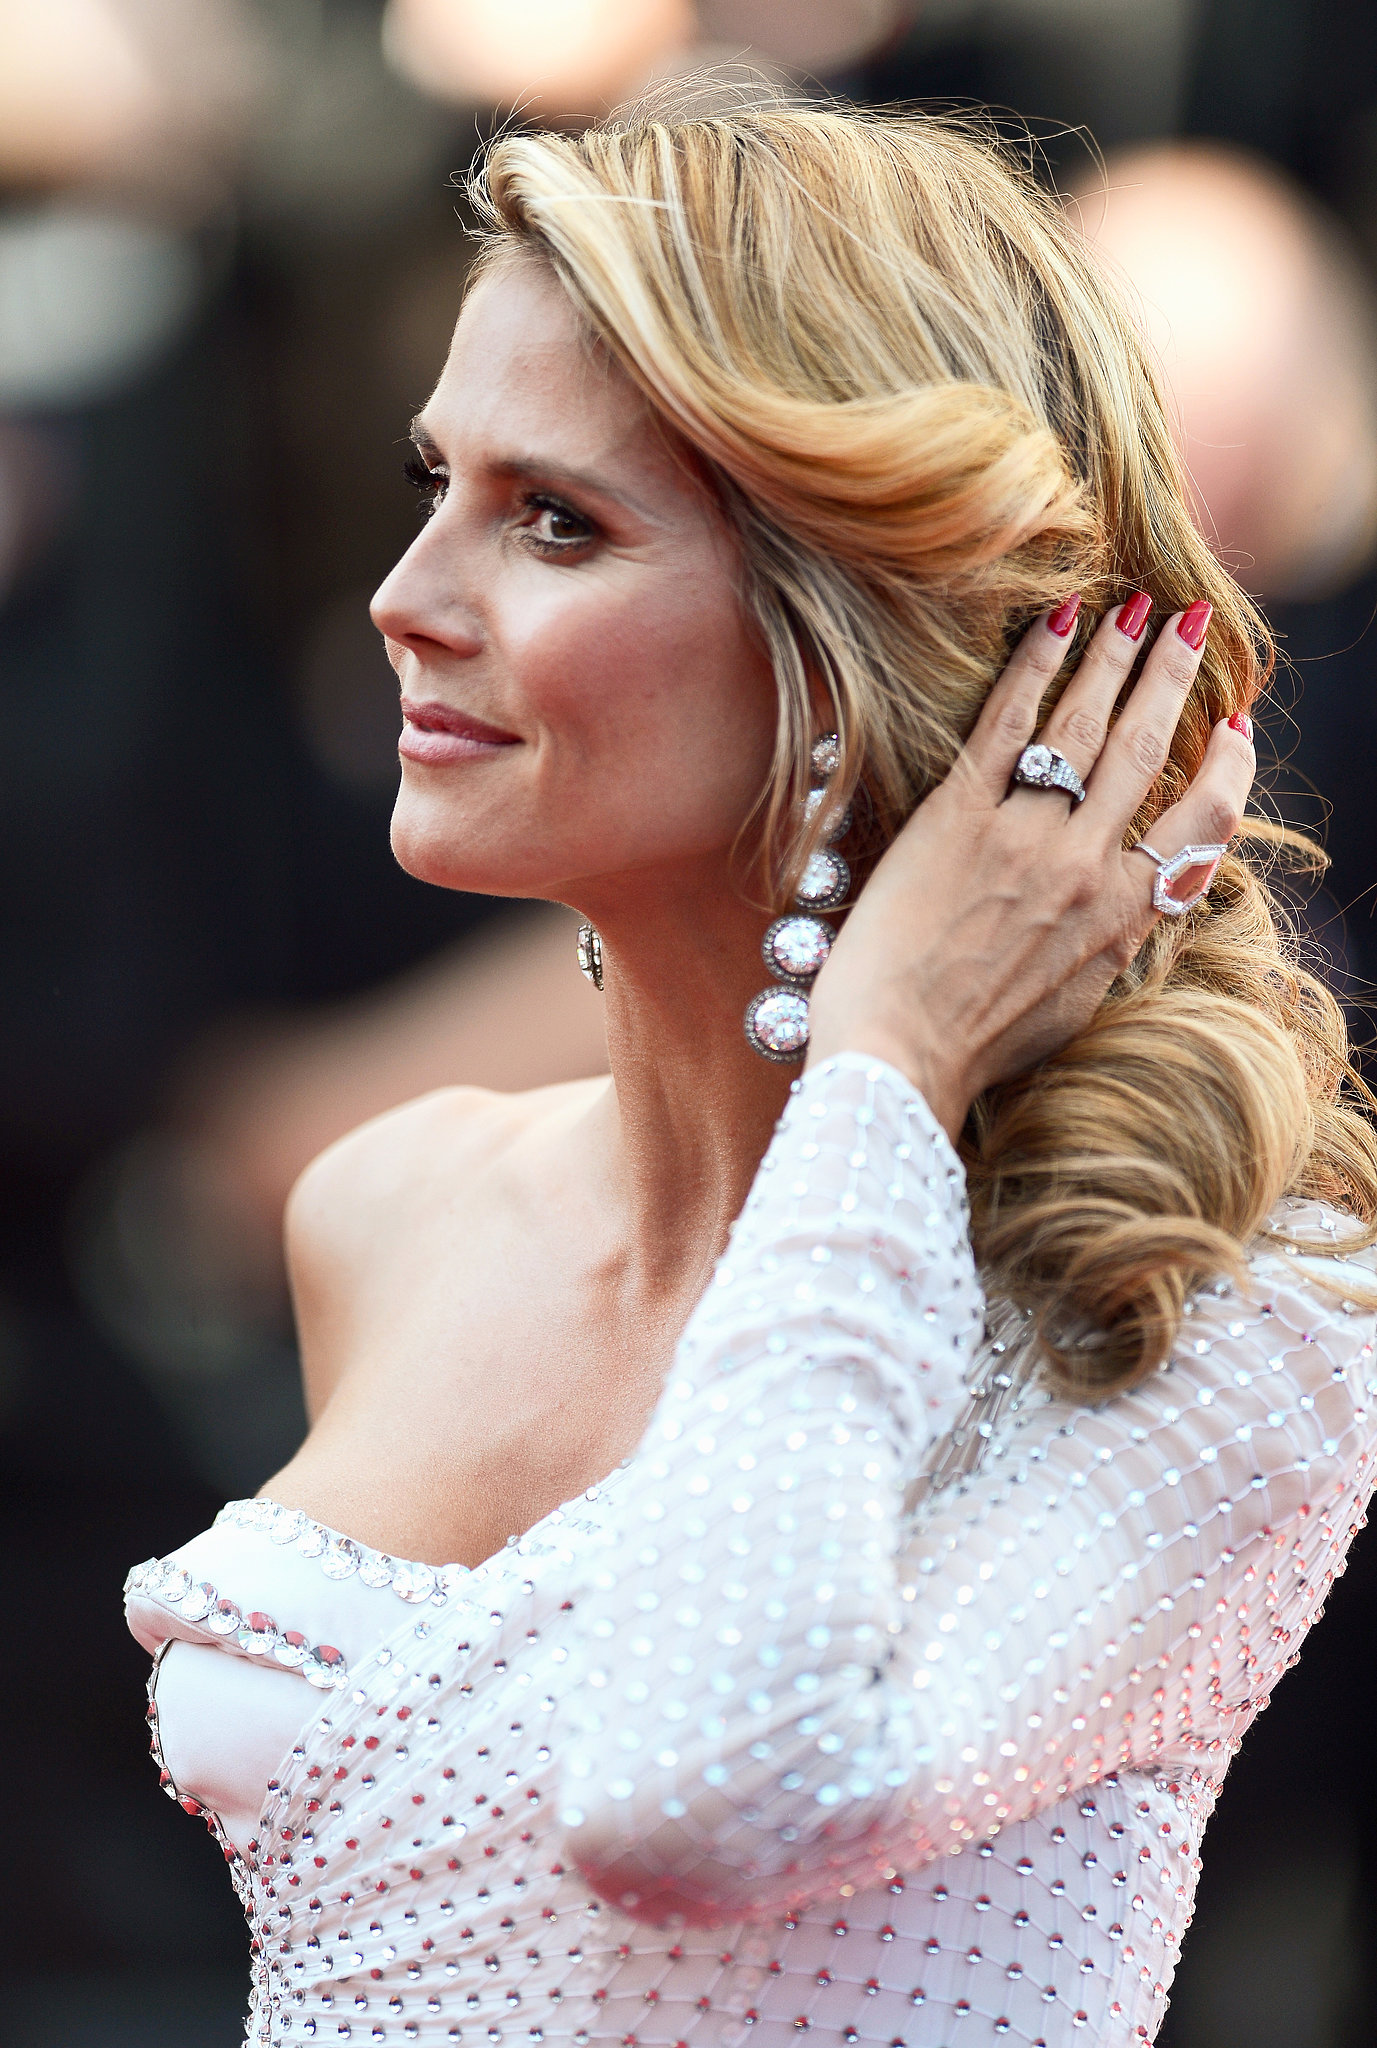 Working the red carpet at the premiere of Nebraska, Heidi Klum stroked back her glamorous waves with her red manicure.